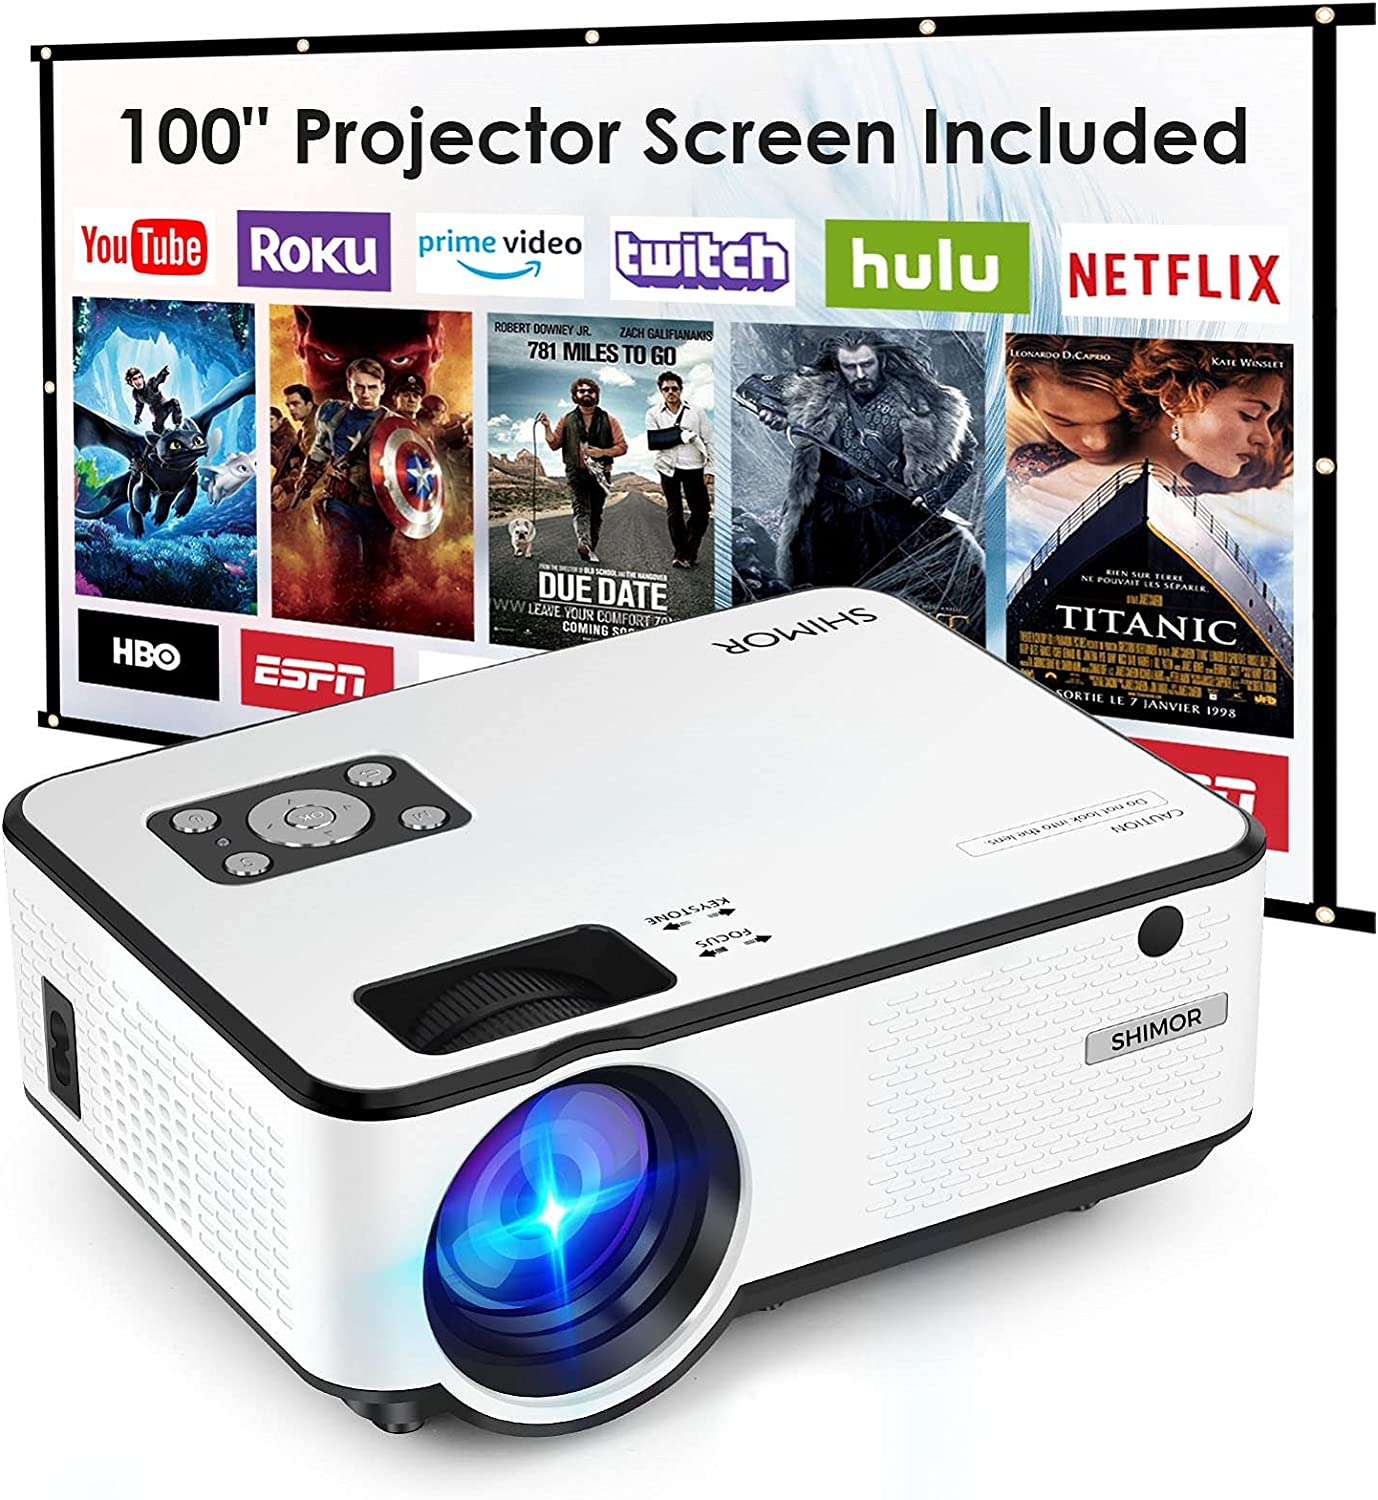 Mini Projector, SHIMOR C9 7500L HD Outdoor Movie Projector with 100 Inch Projector Screen, 1080P Supported Compatible with TV Stick, Video Games, HDMI, USB, AUX, AV, PS4, Laptop, Smartphone